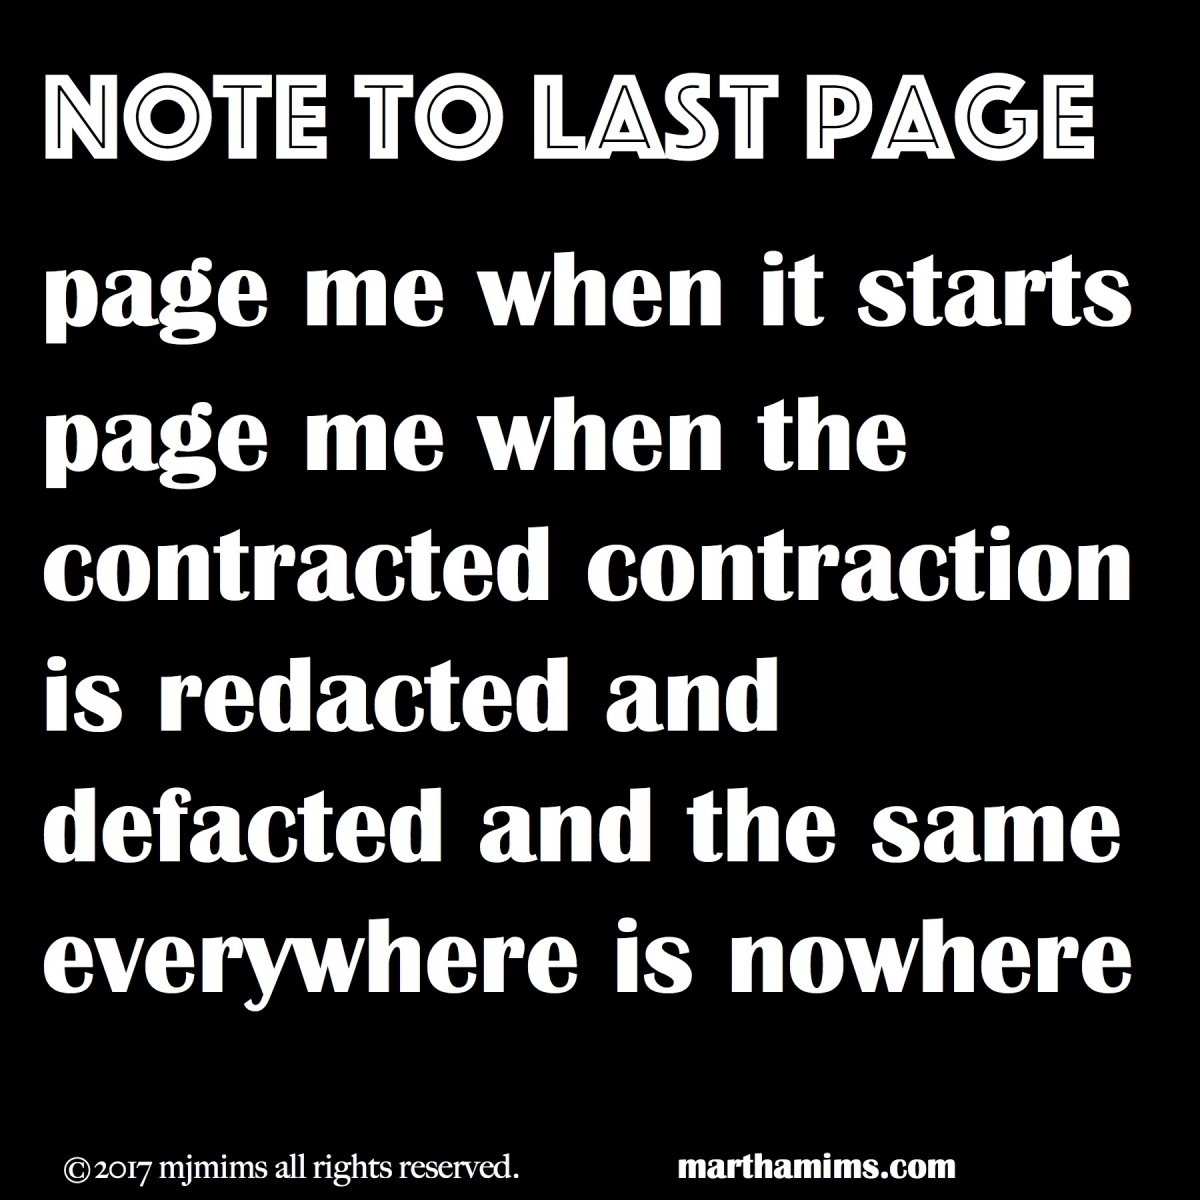 note-the-last-page